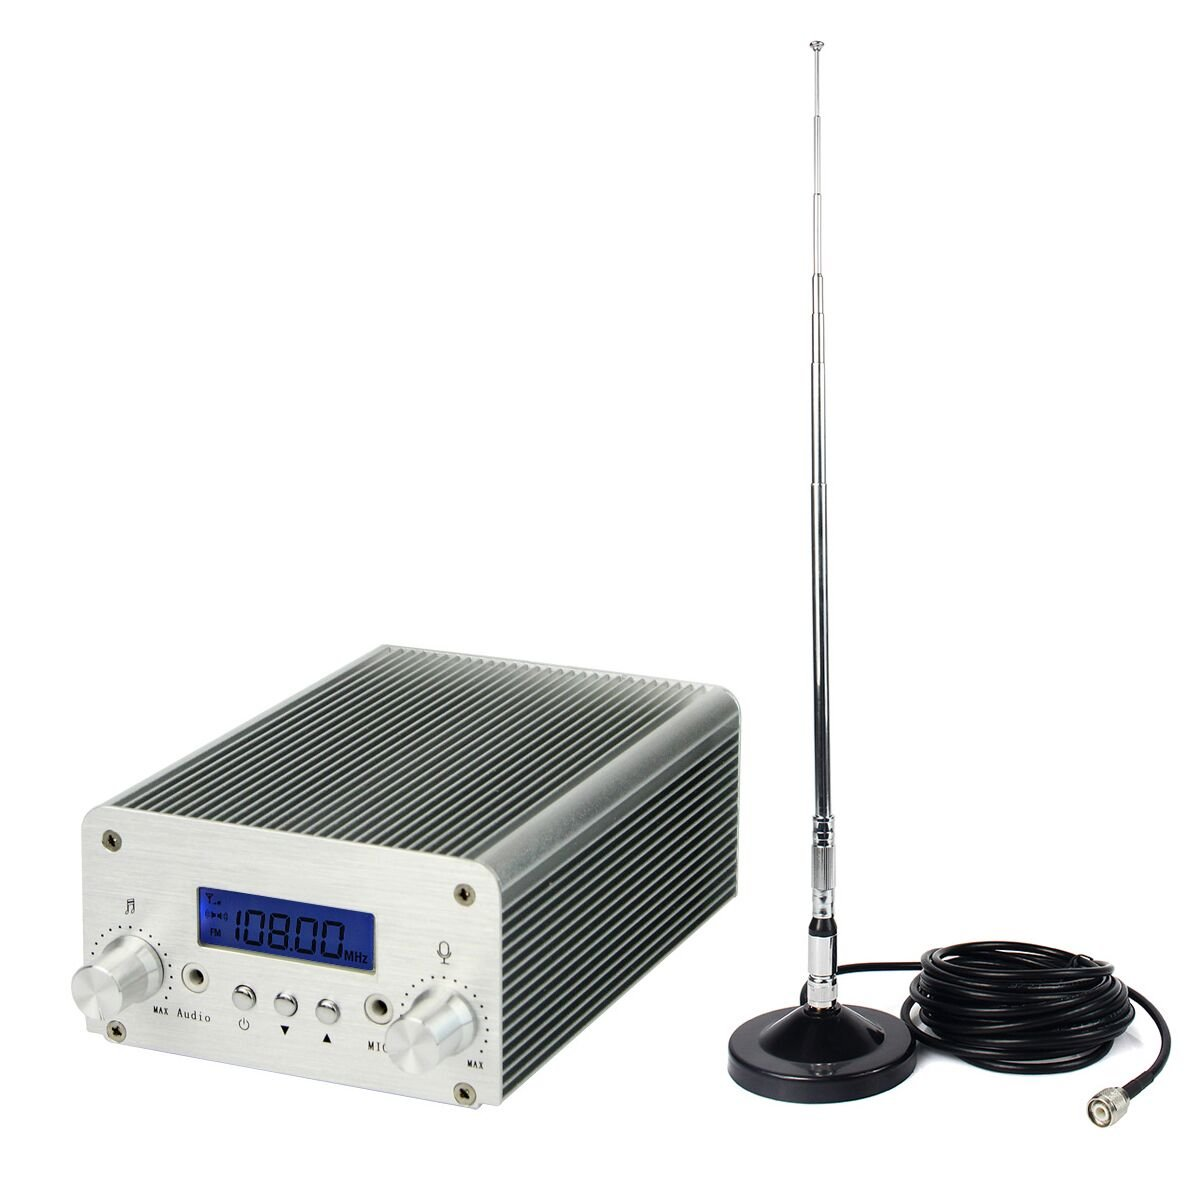 TIVDIO 5W / 15W Wireless FM Transmitter Dual Mode Long Range Mini Home Radio Stereo Station PLL LCD with Antenna(Silver)